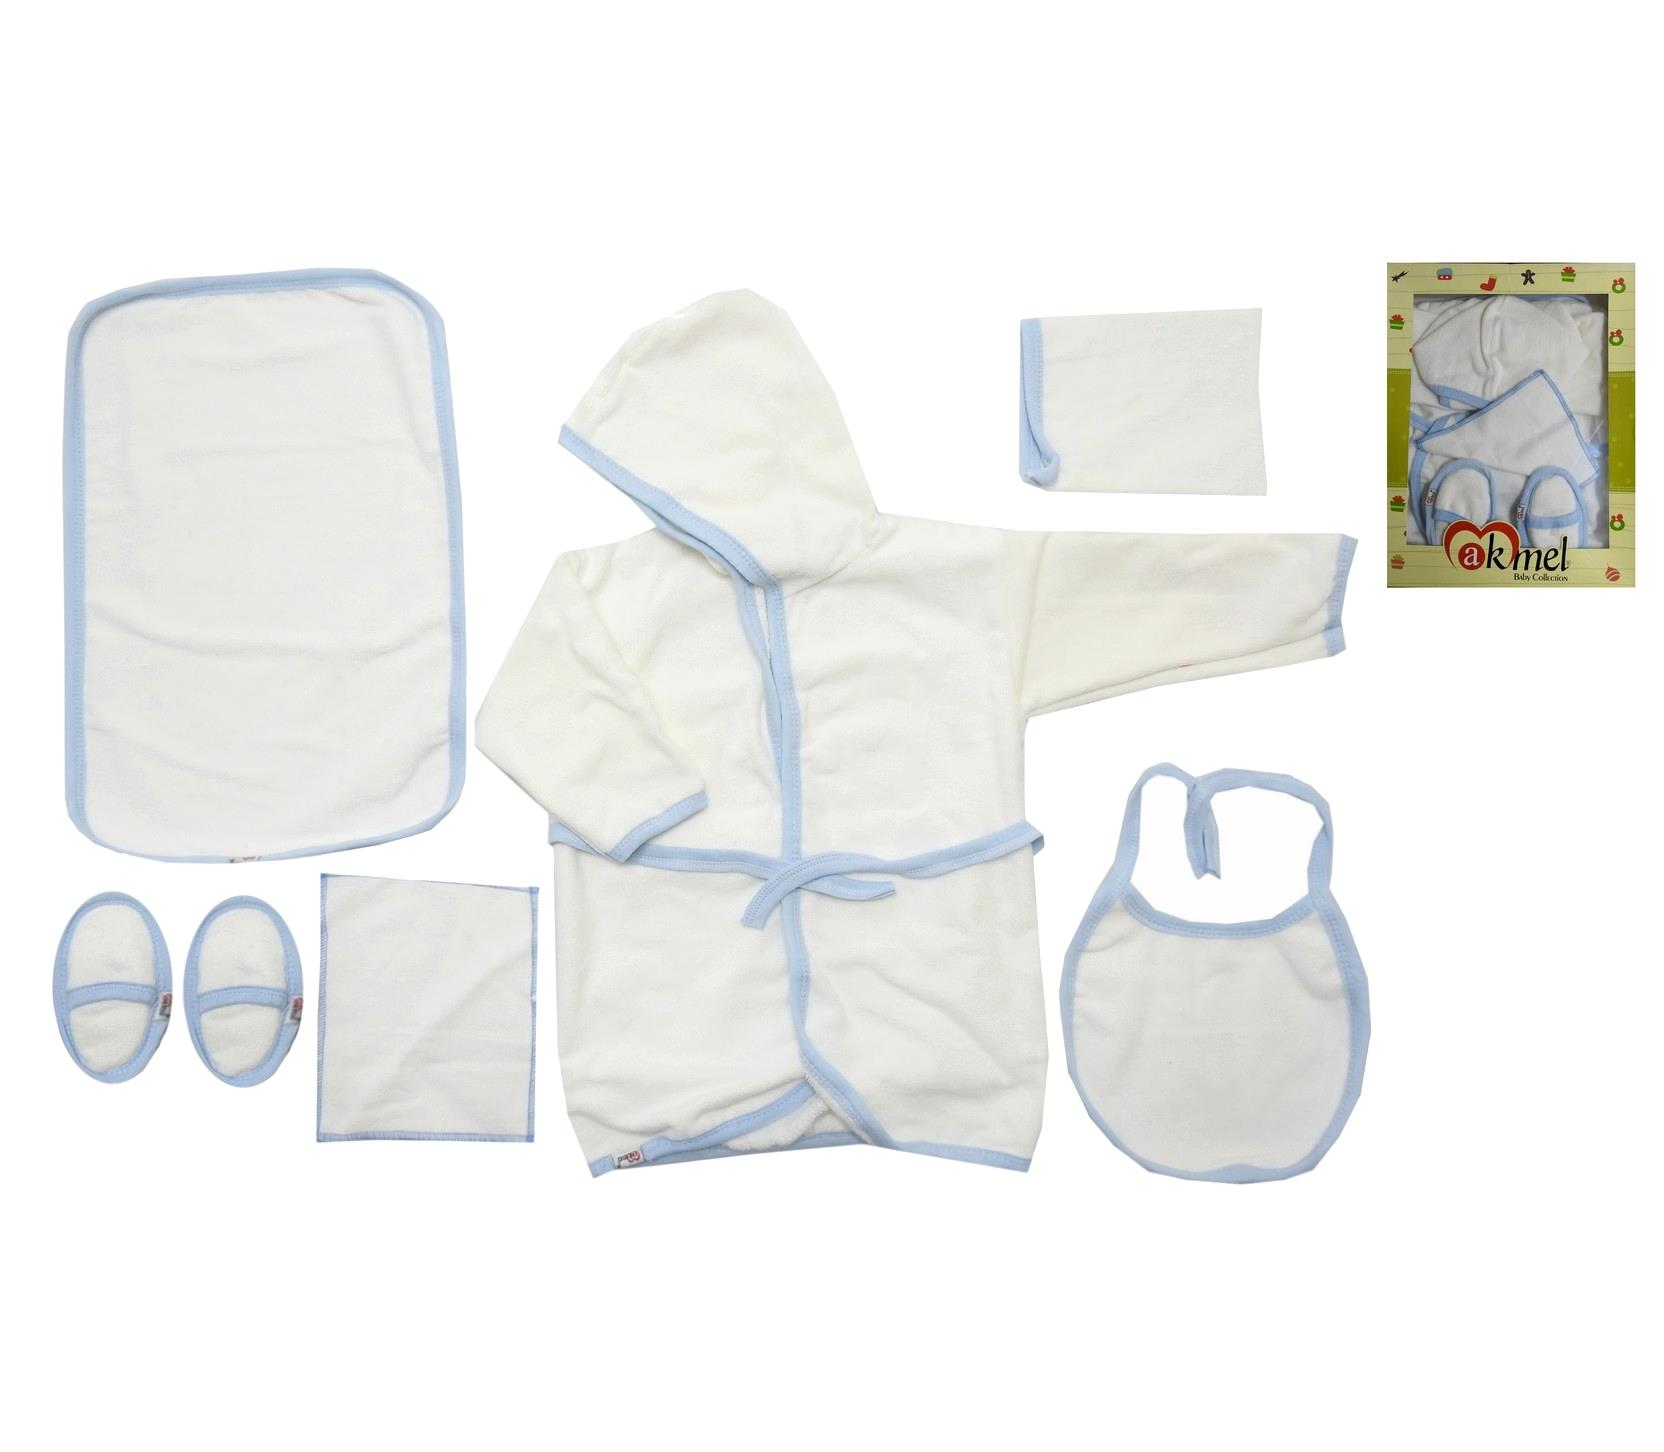 WHOLESALE BATHROBE, CHANGING PAD, BATH GLOVE, SLIPPERS, BIBS, HANKIE SET FOR BABY